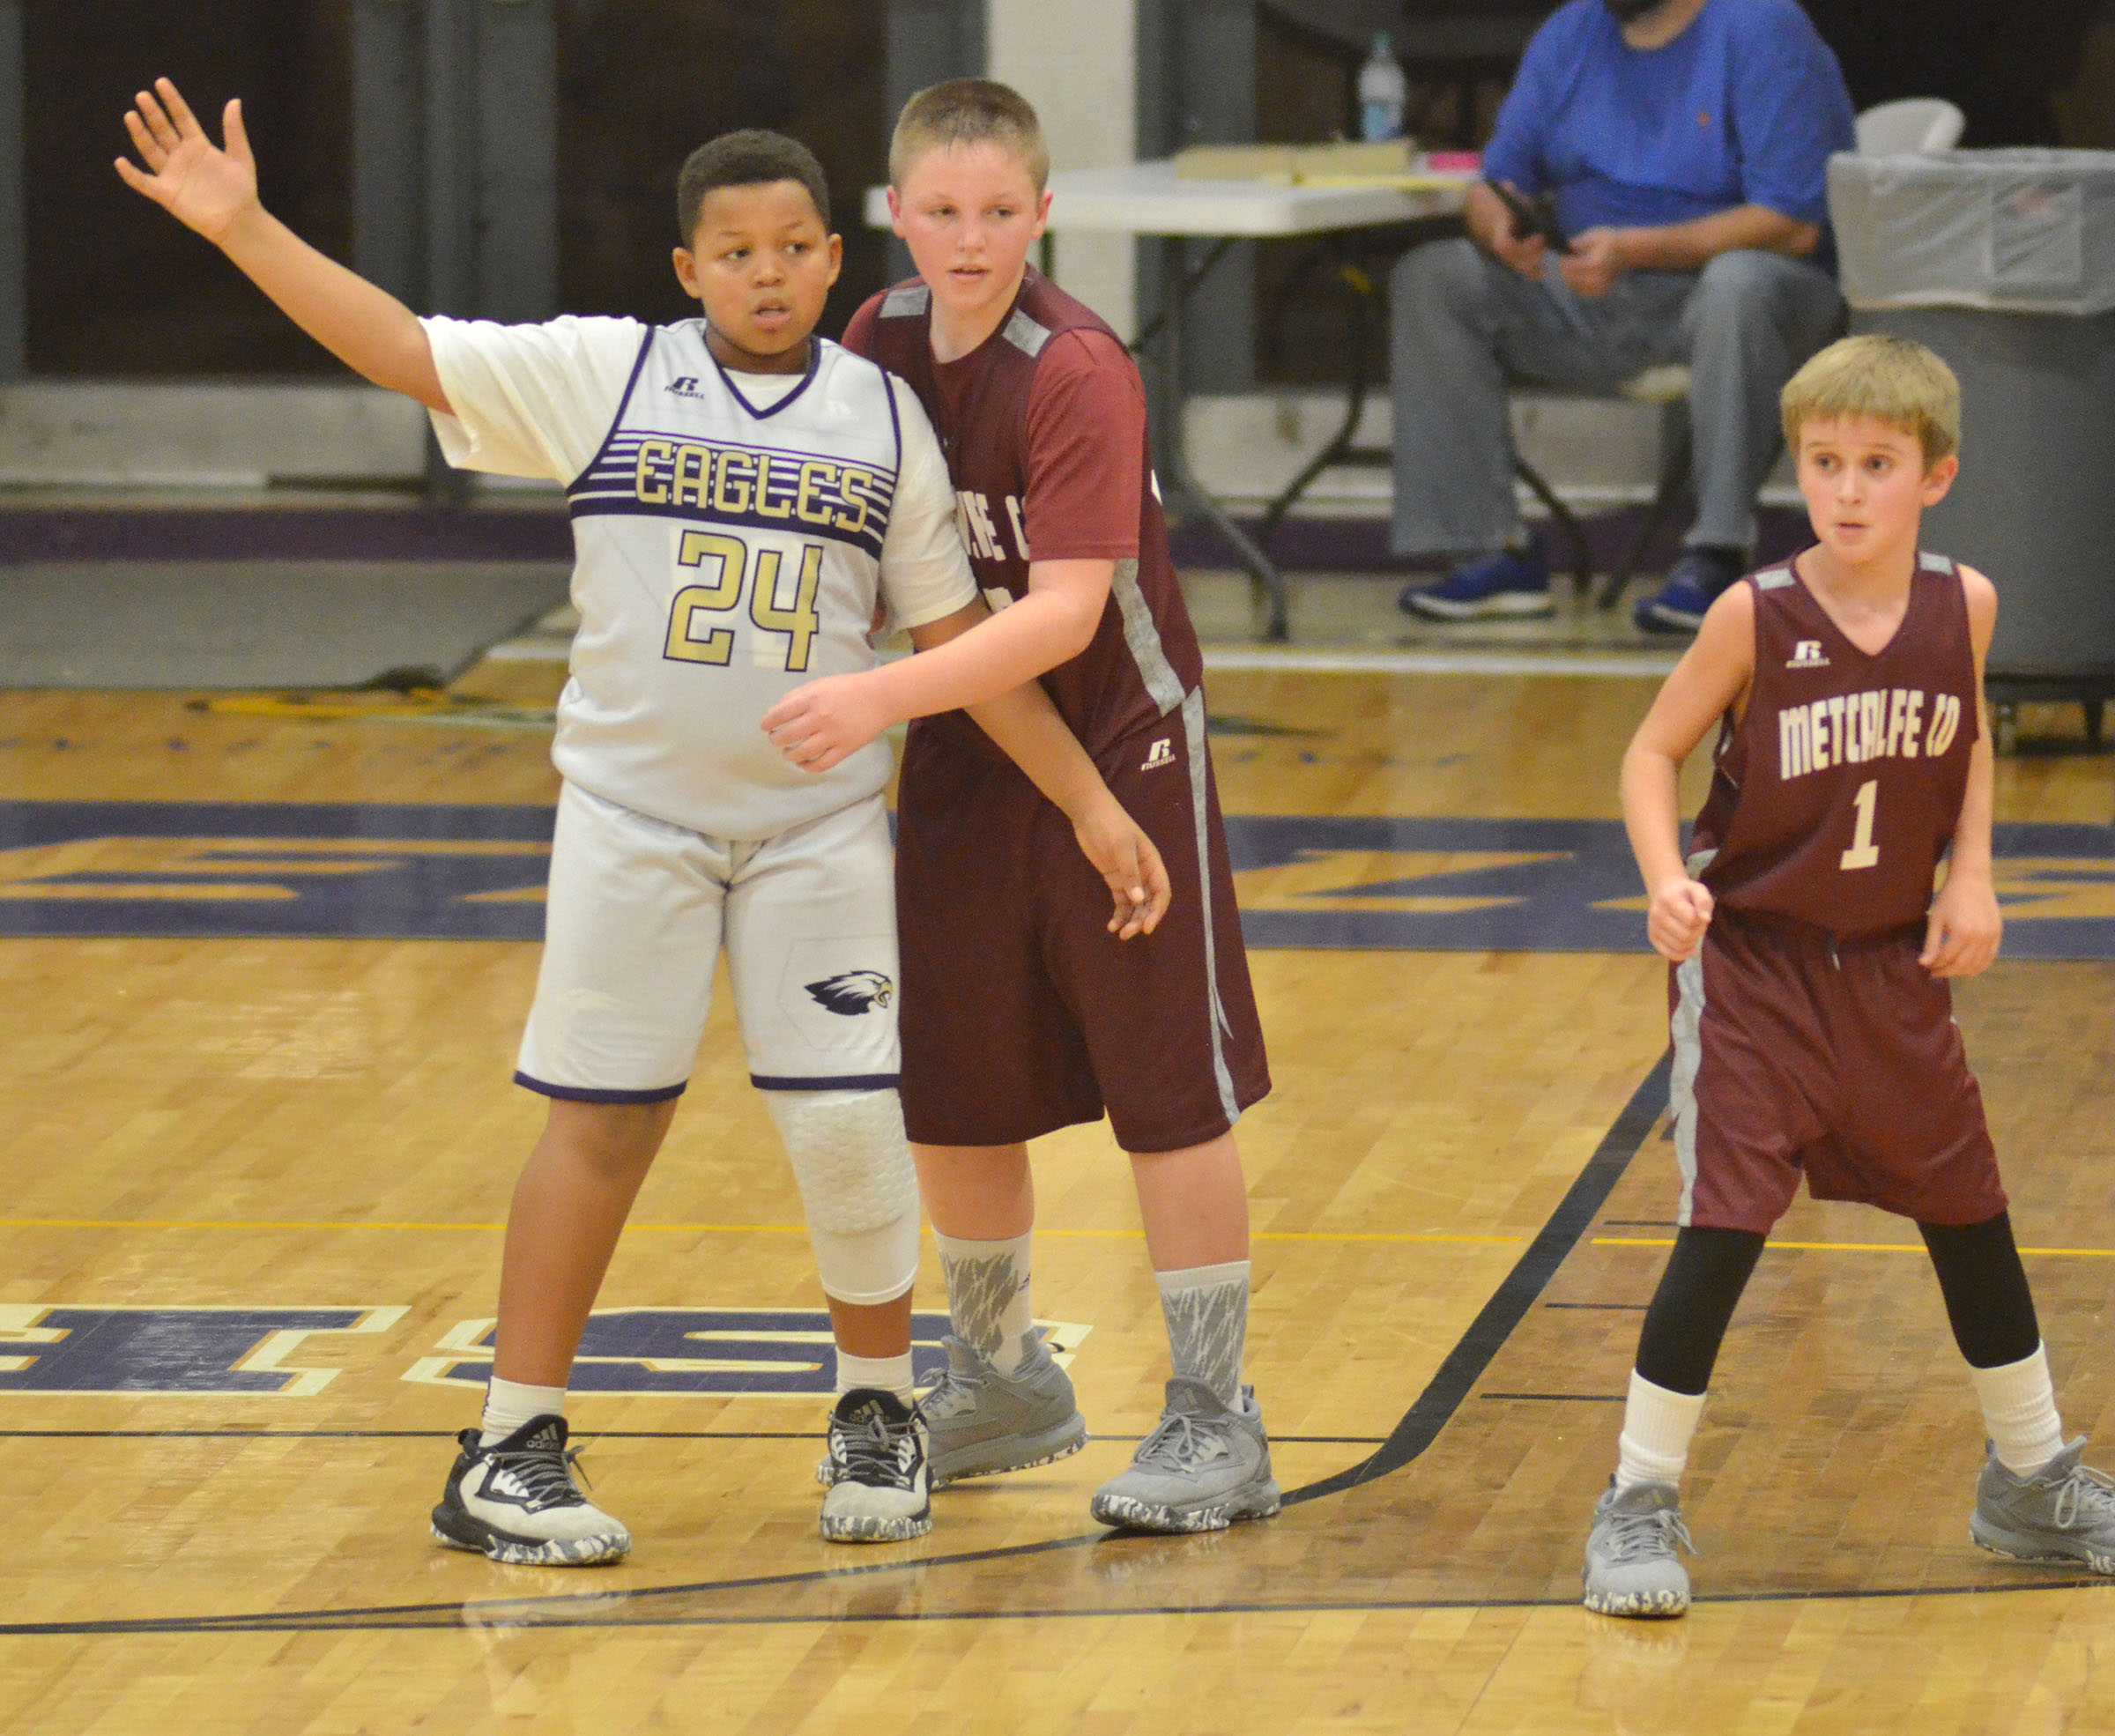 CMS sixth-grader Deondre Weathers calls for the ball.